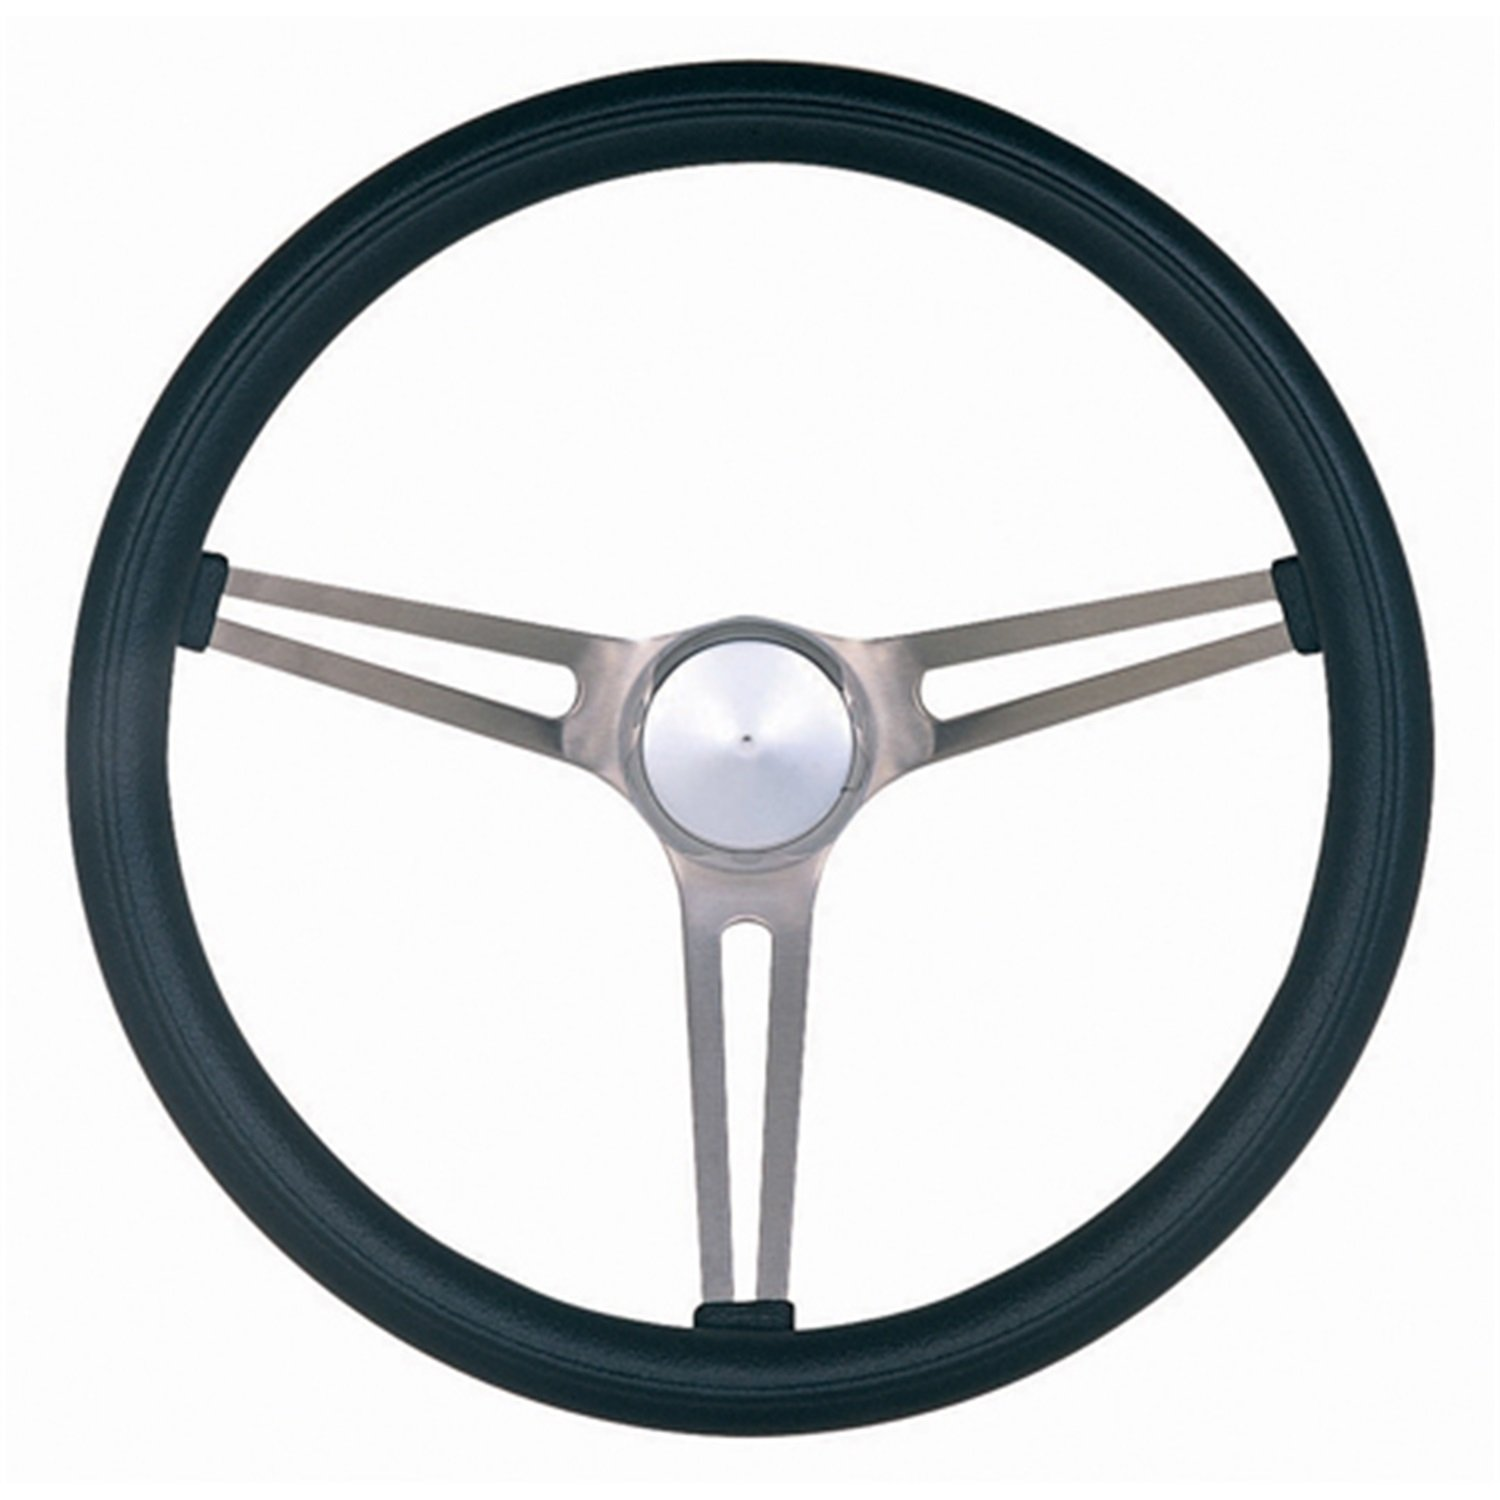 Grant 969-0 Classic Nostalgia Style Steering Wheel with Black Foam Grip and Brushed Stainless Spokes